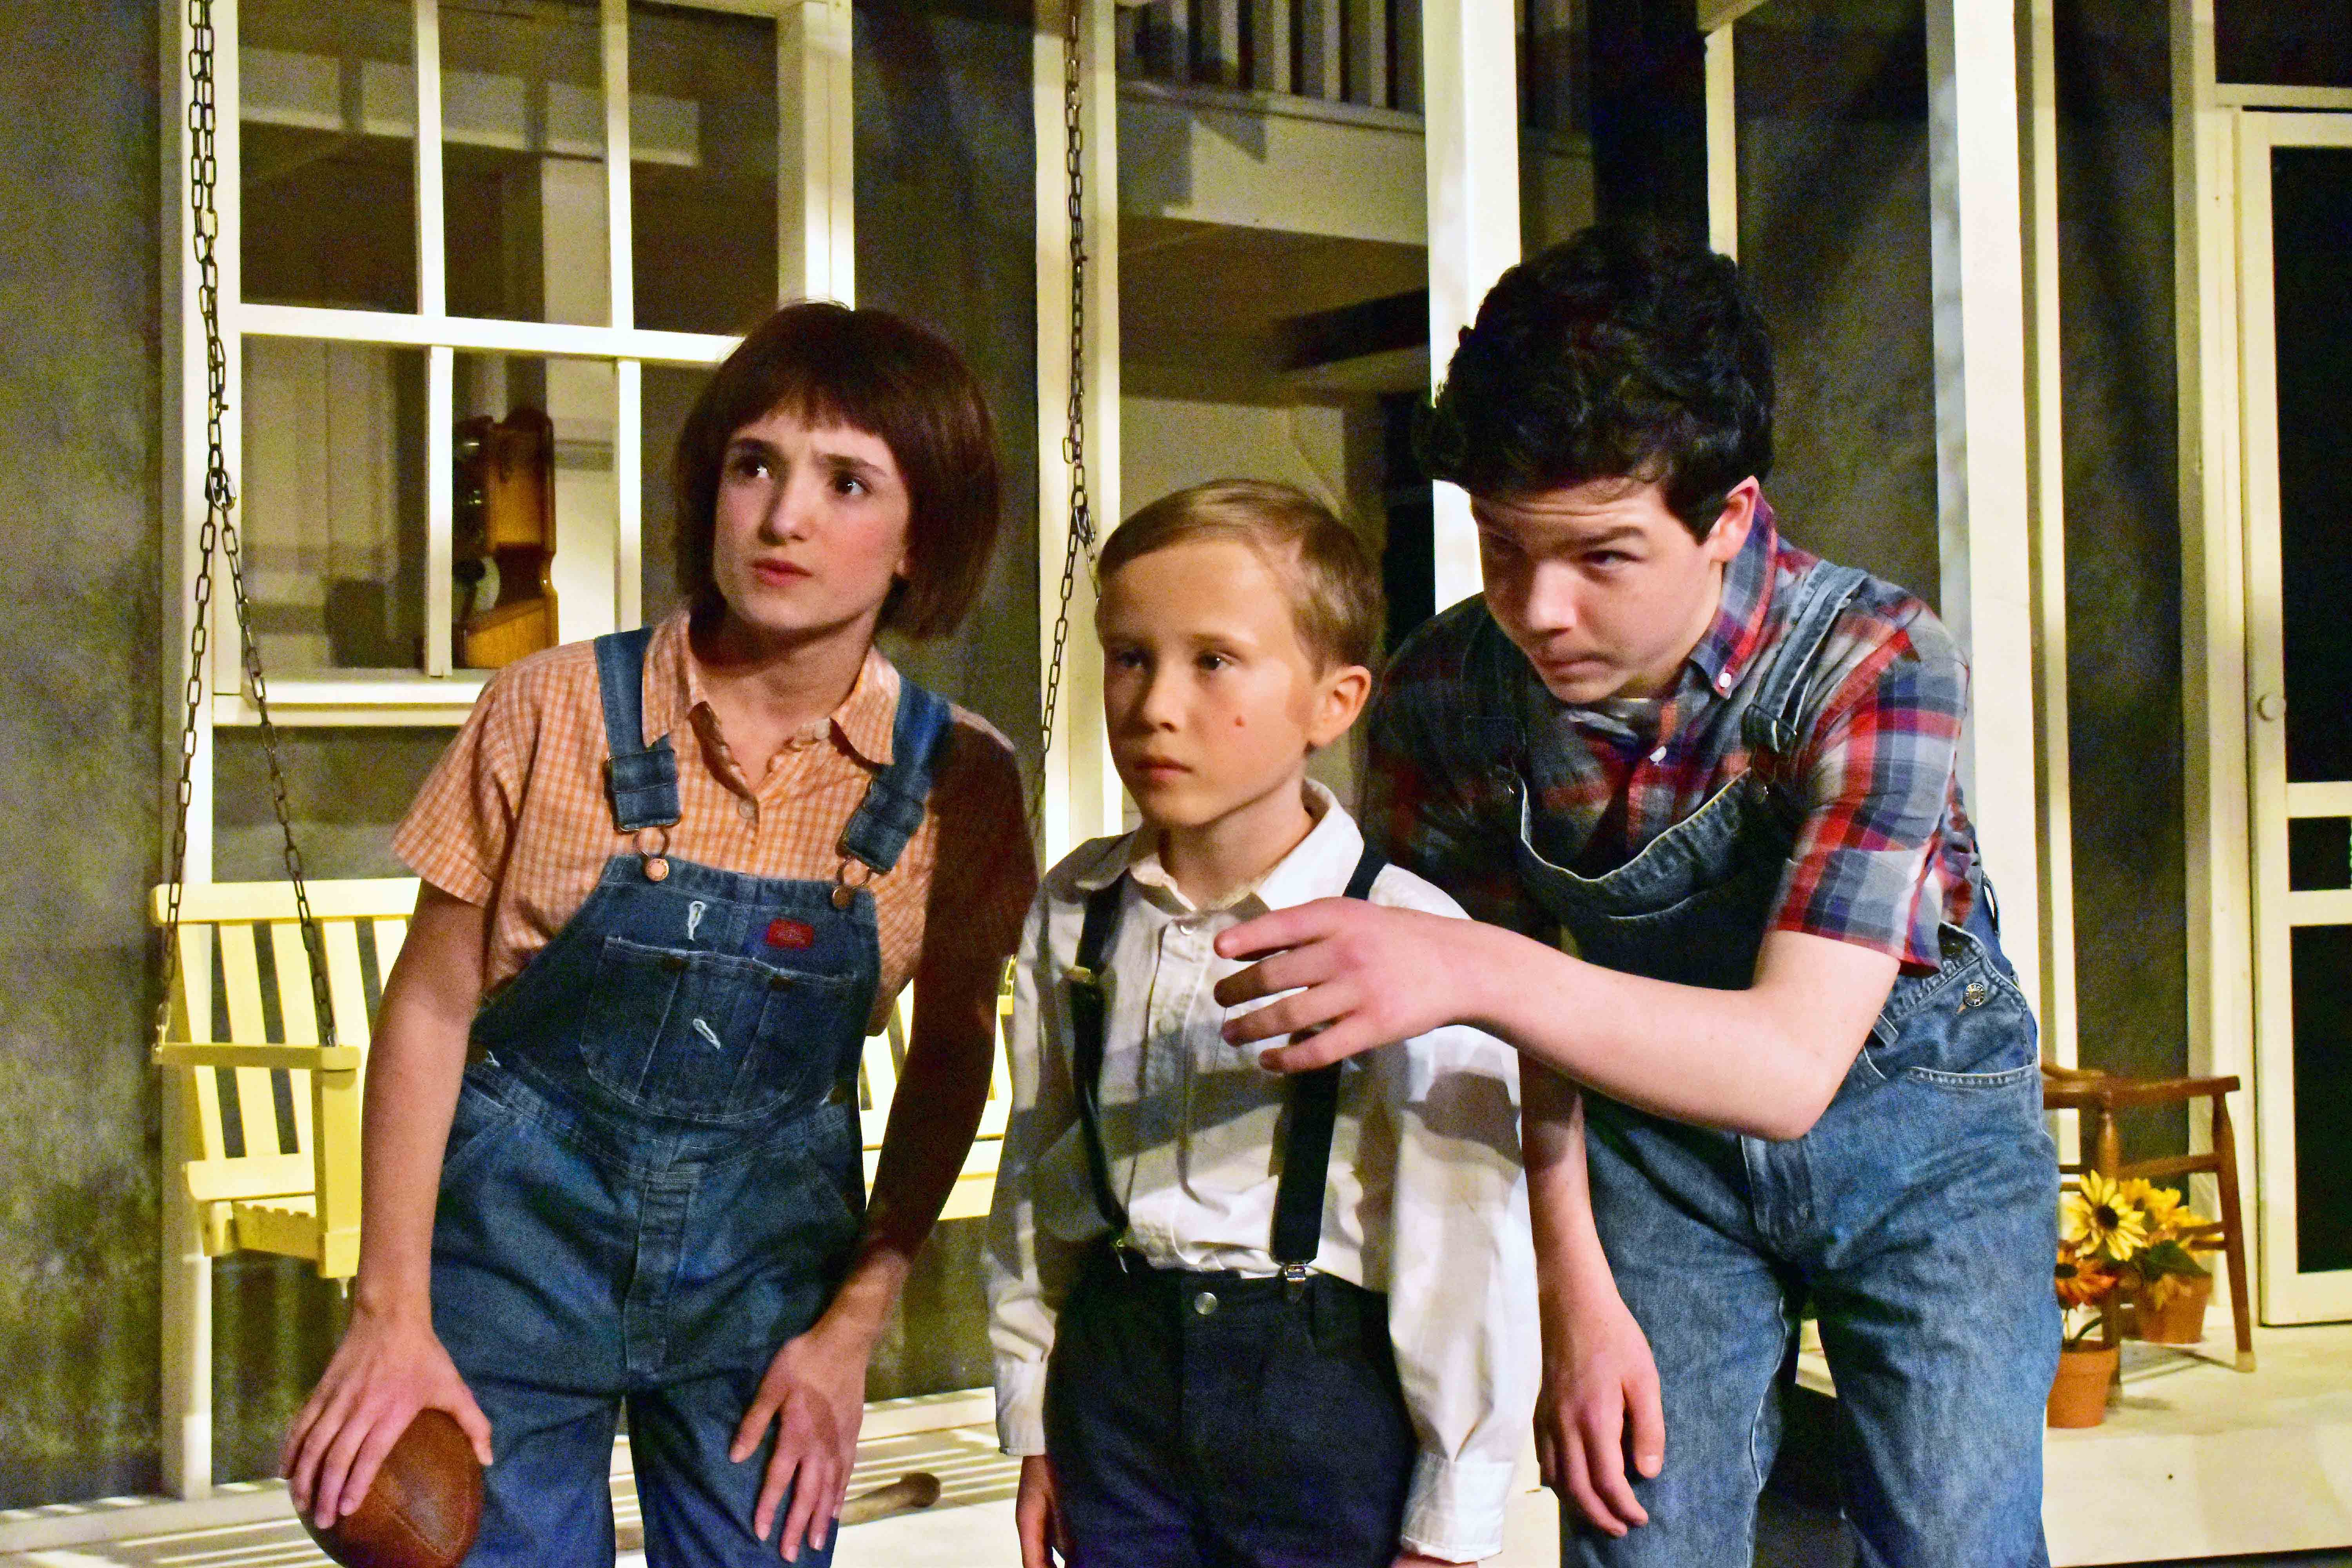 Sophia Manicone Caden Mitchell and Brendan Dure in the Providence Players production of To Kill a Mockingbird Photo by Chip Gertzog Providence Players